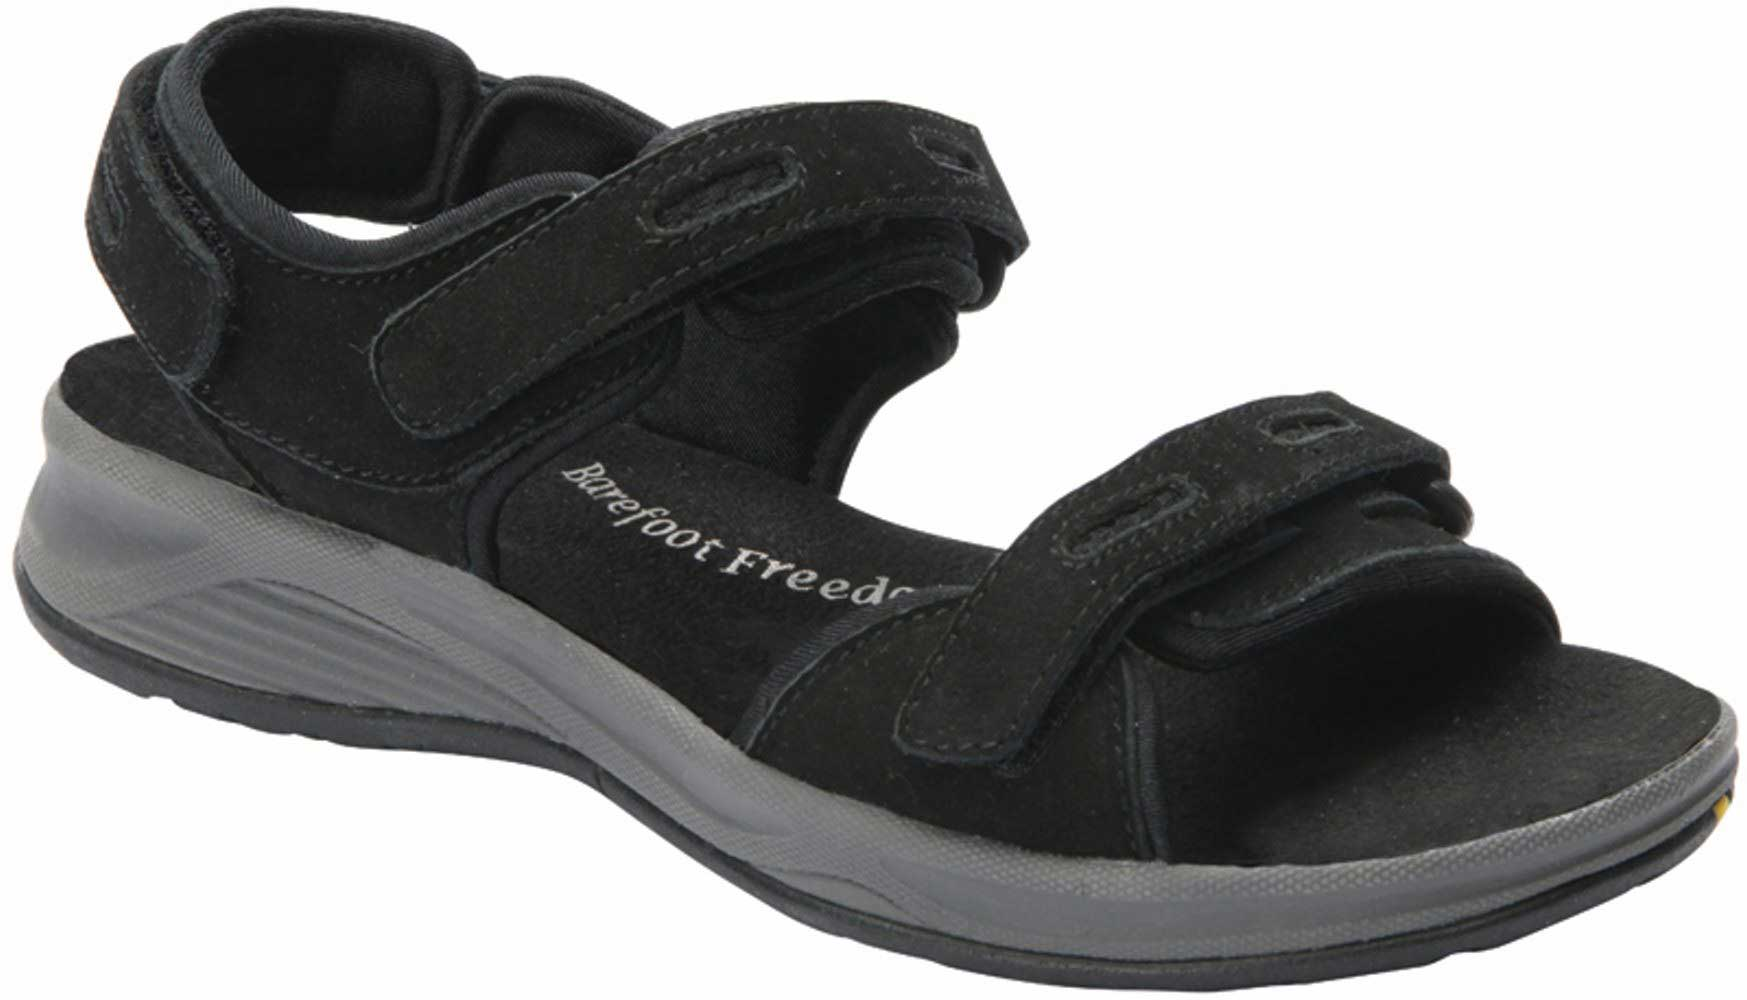 Drew Shoes Cascade 17051 - Women's Comfort Therapeutic Diabetic Shoe with Removable Footbed - Sandal - Narrow (AA) - X-Wide (2E) - Extra Depth for Orthotics